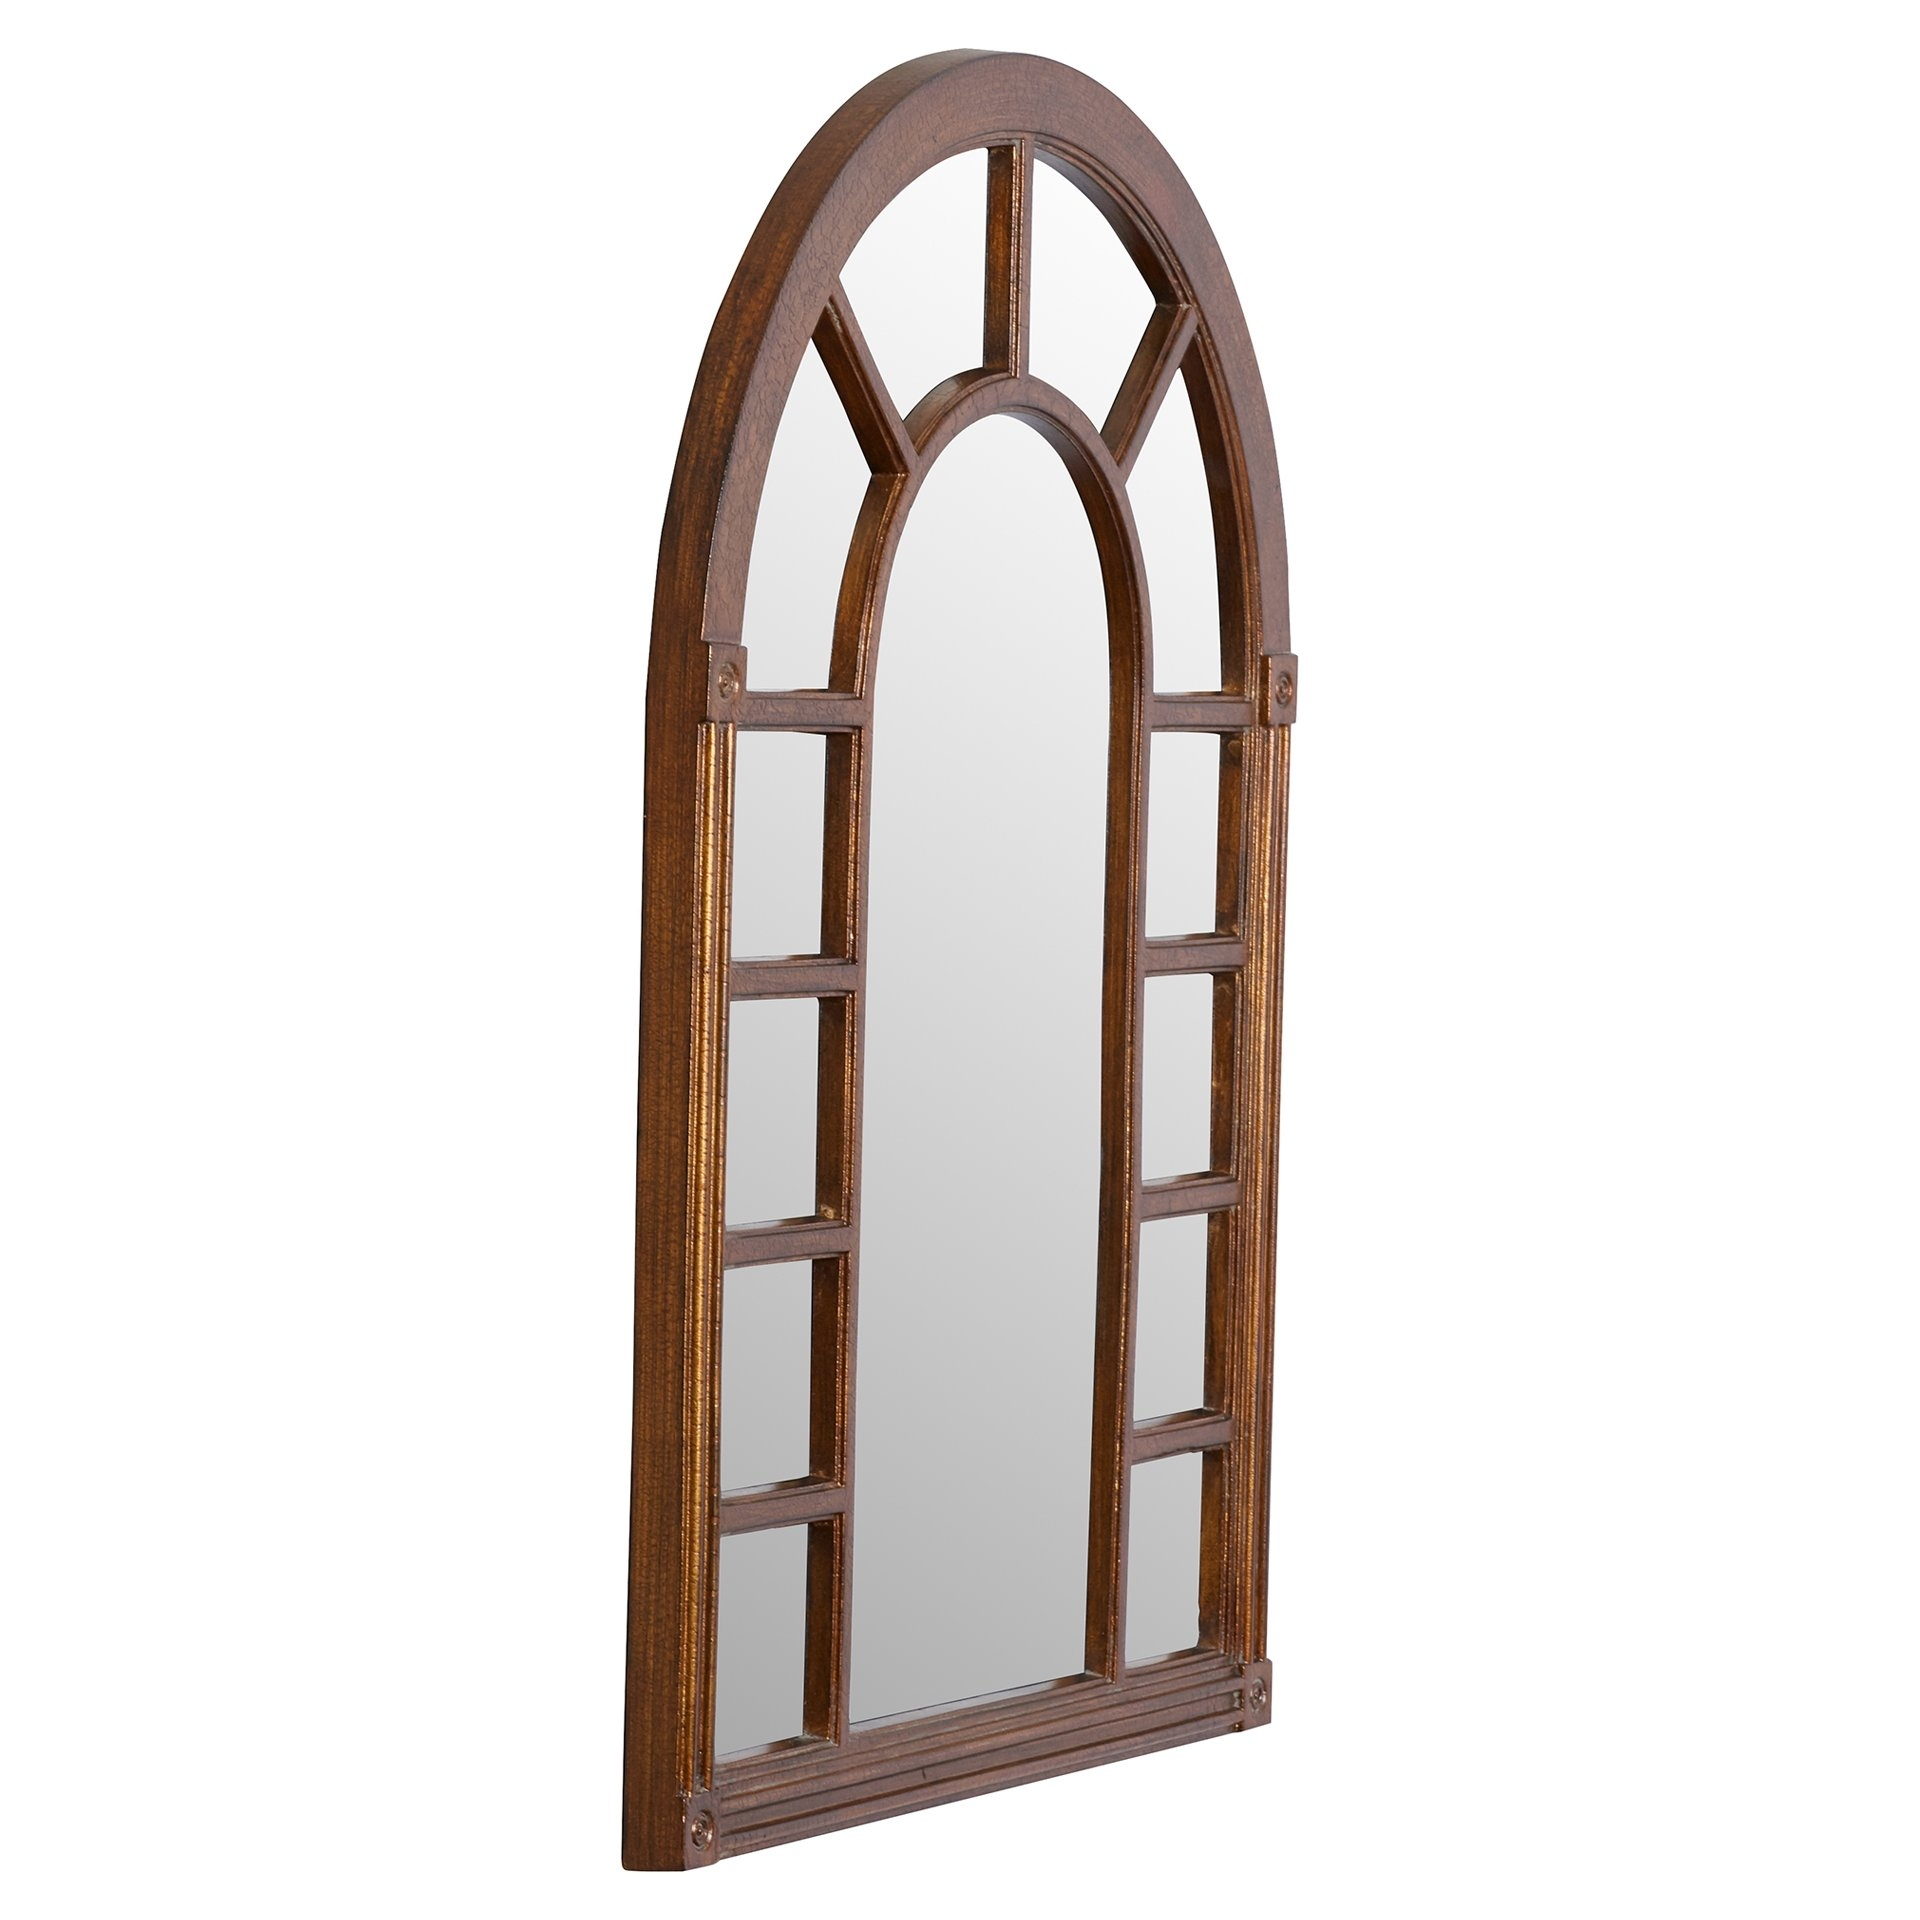 Cathedral Arched Oversized Wall Mirror Reviews Joss Main Inside Arched Wall Mirror (Image 5 of 15)